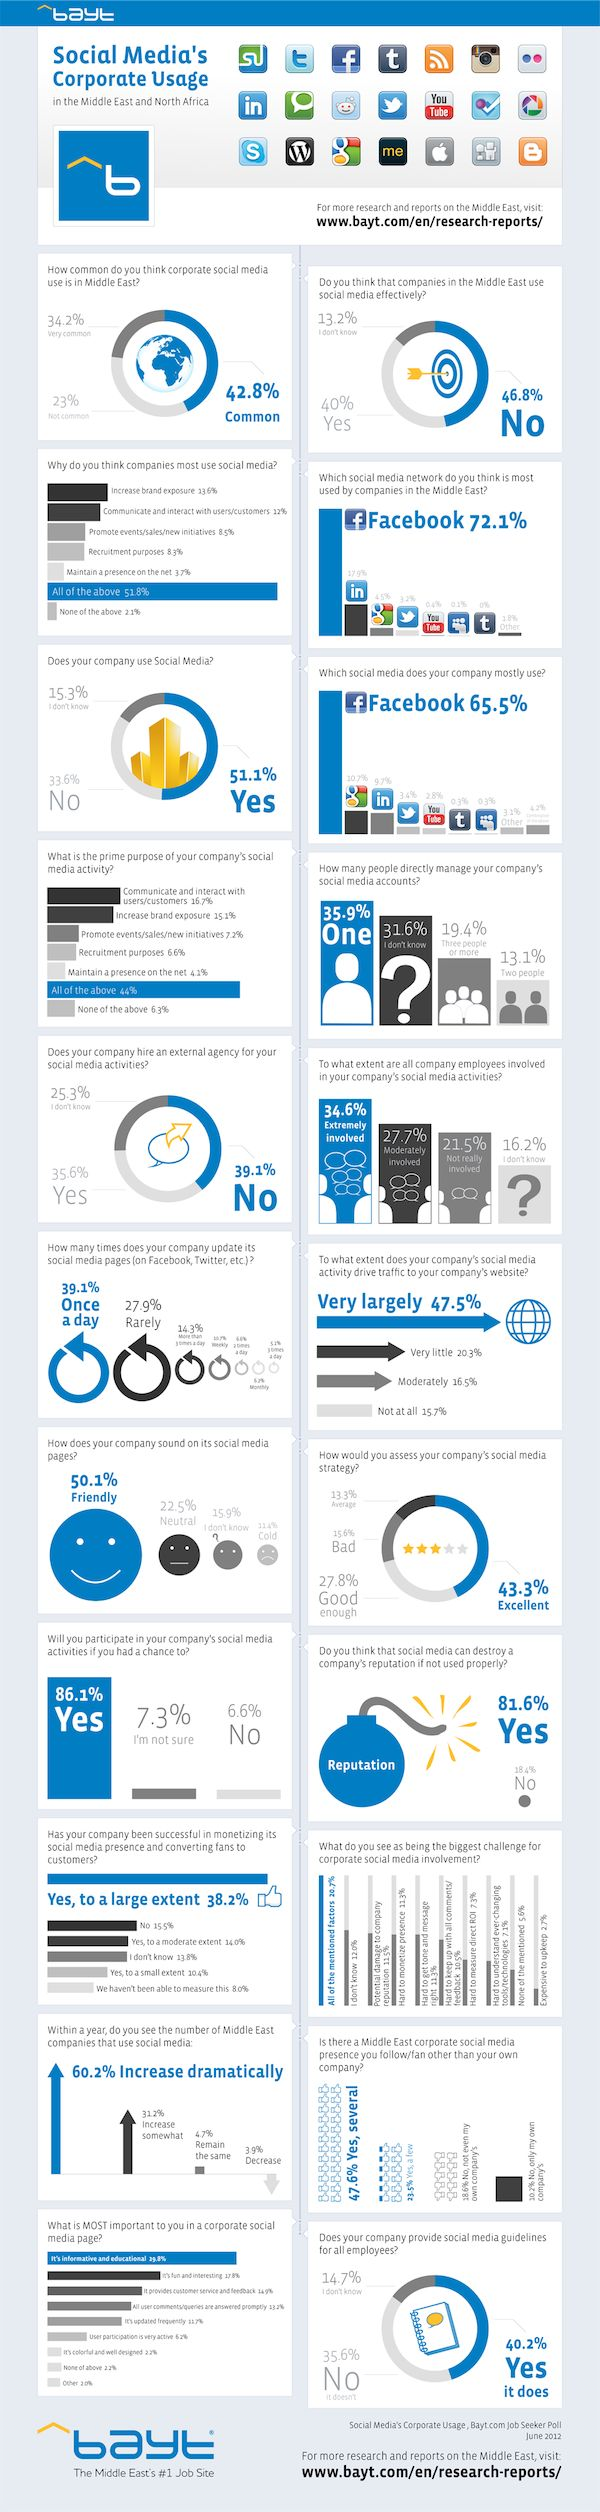 Five interesting infographics from the Middle East | Econsultancy